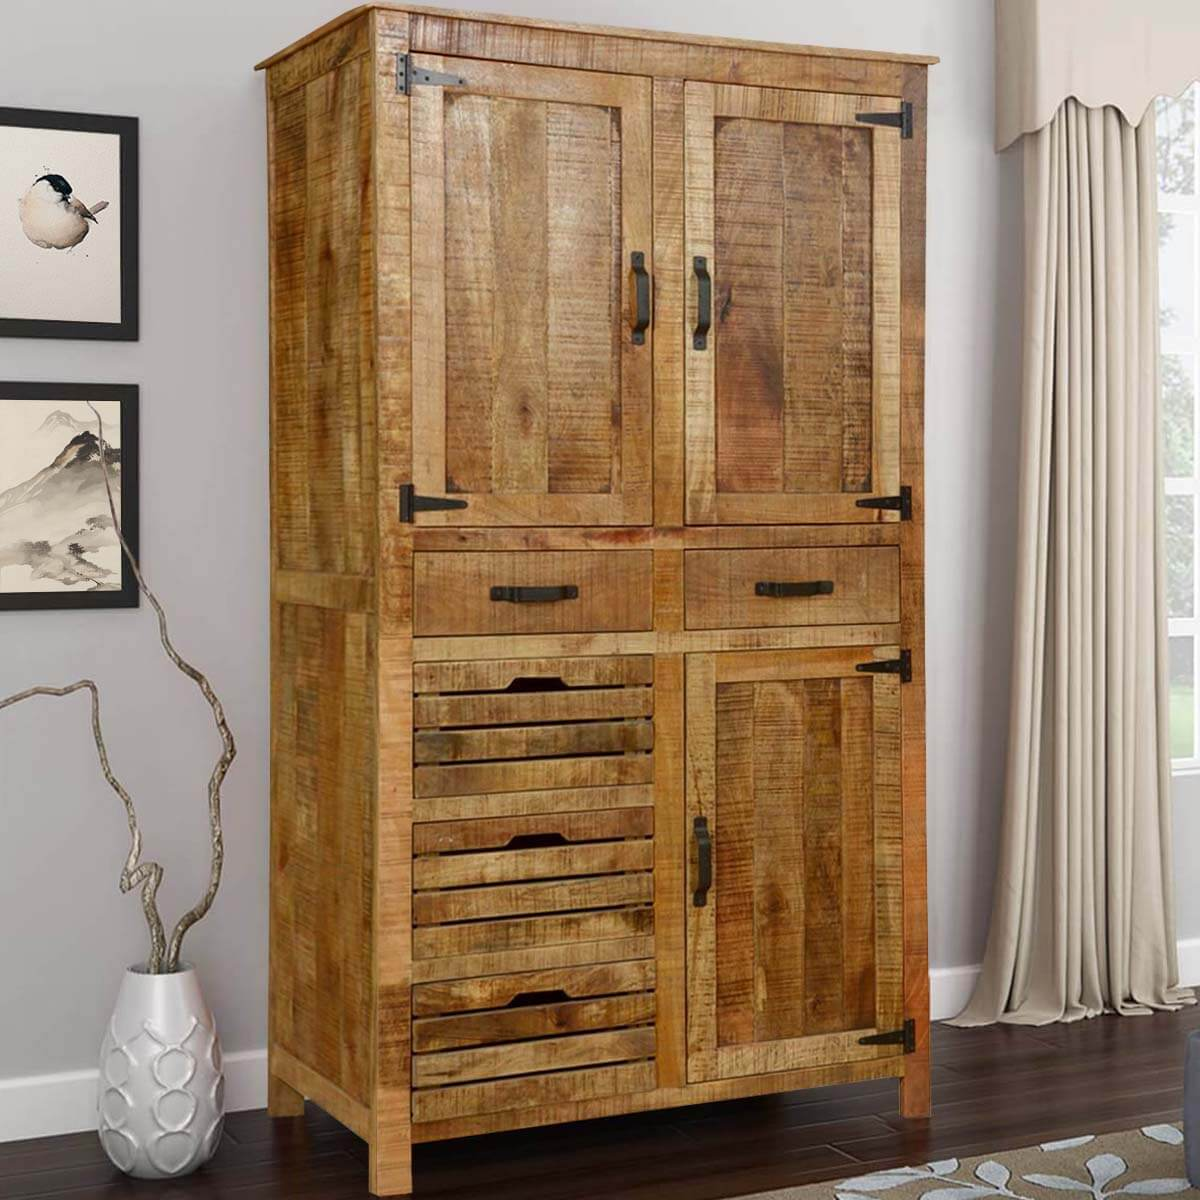 Avon Pioneer Rustic Solid Wood Tall Storage Cabinet With 5